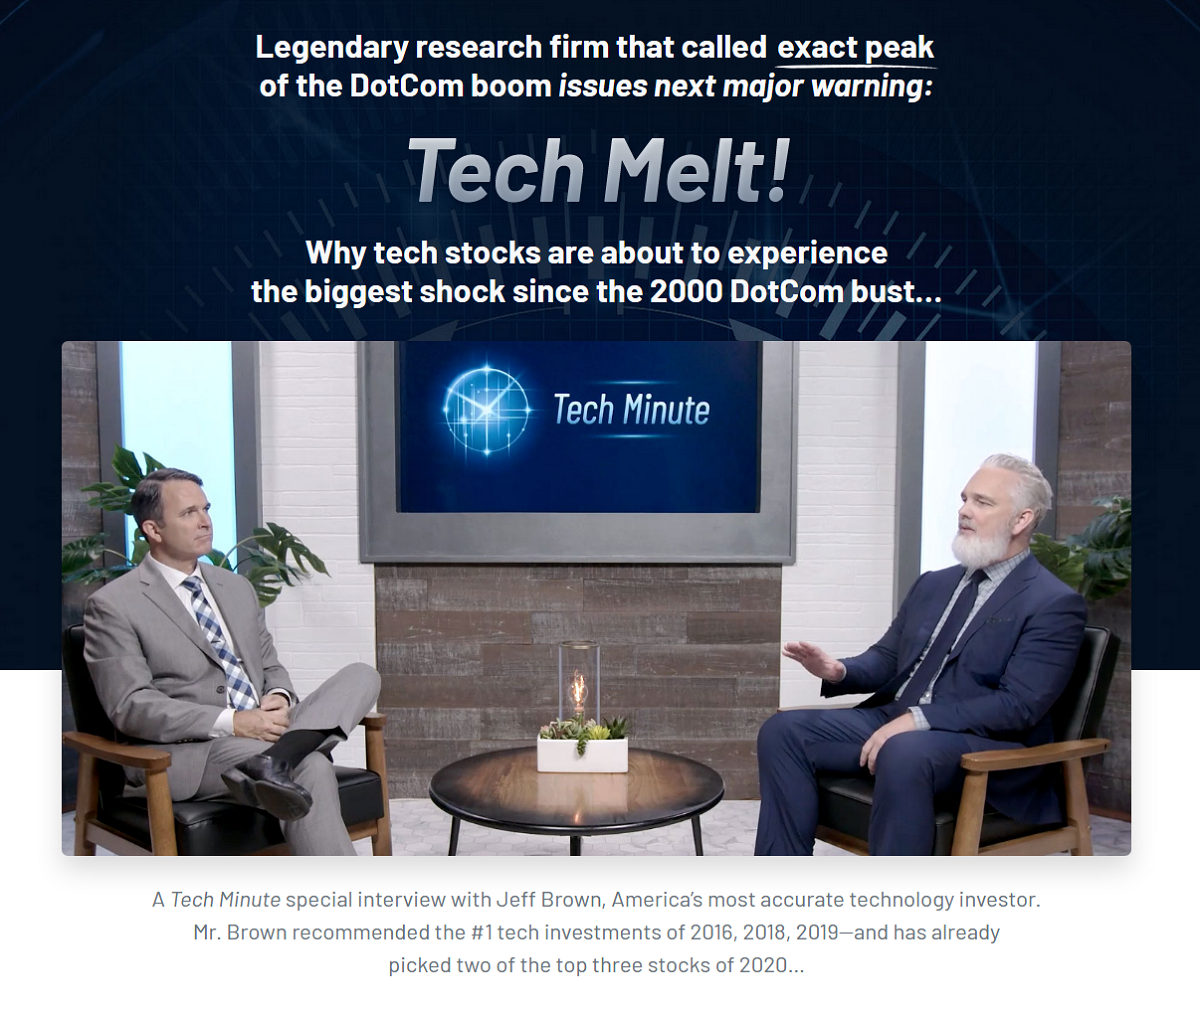 Jeff Brown Second Wave: Tech Melt – Near Future Report